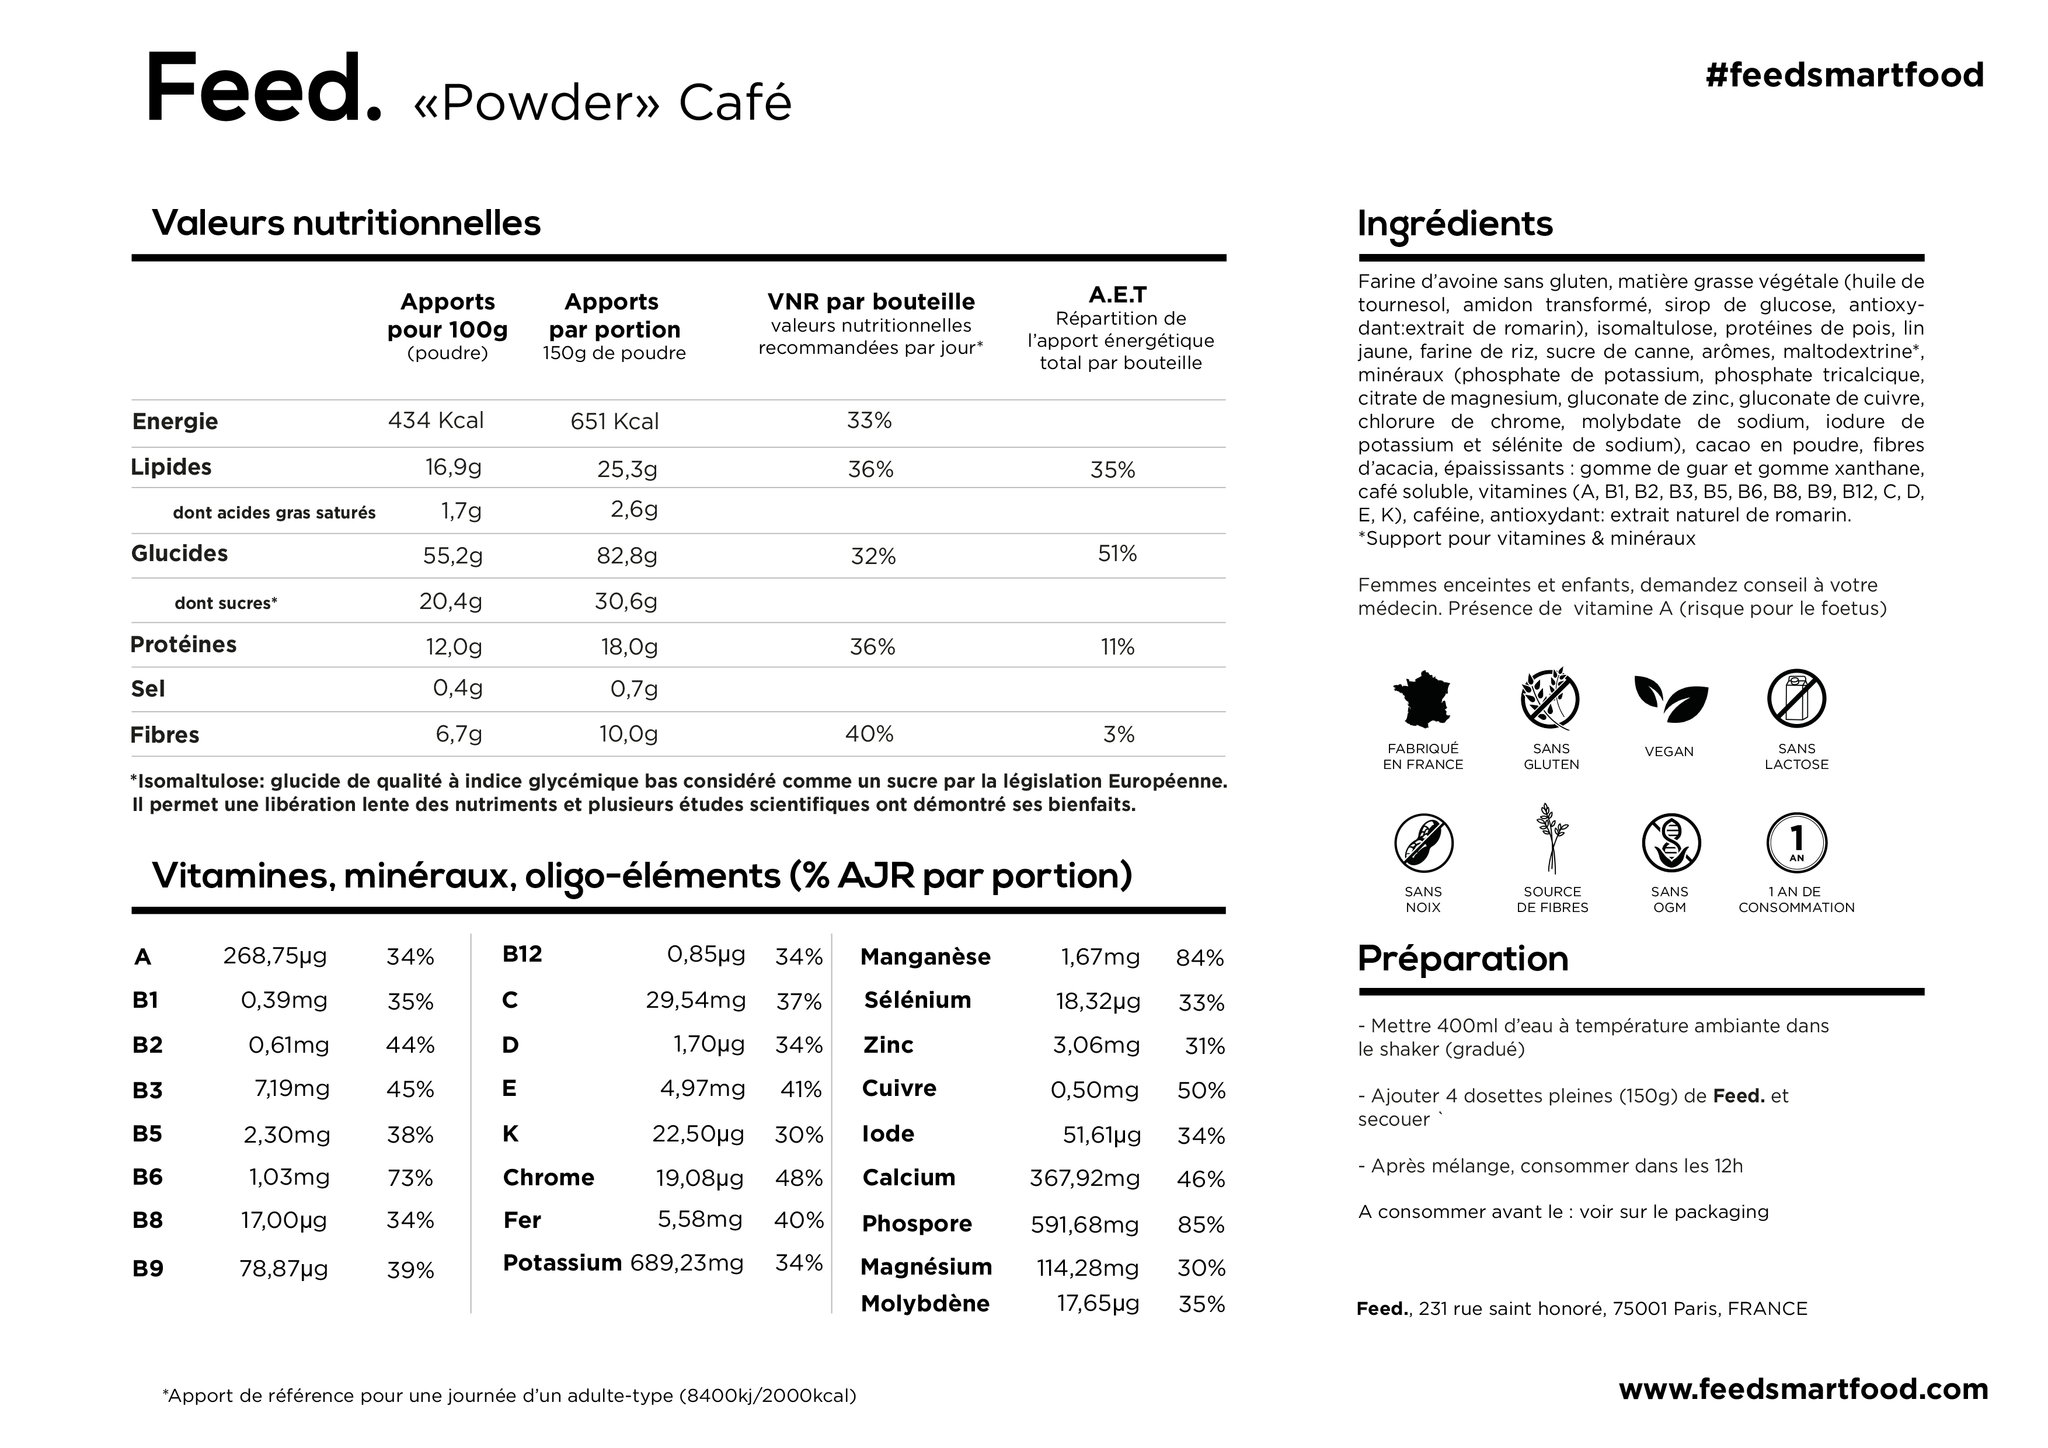 products/feed_tableau_nutritionnel_powder_cafe_fr_8c347590-d4d7-4c5a-b52f-8025ab4612a8.png